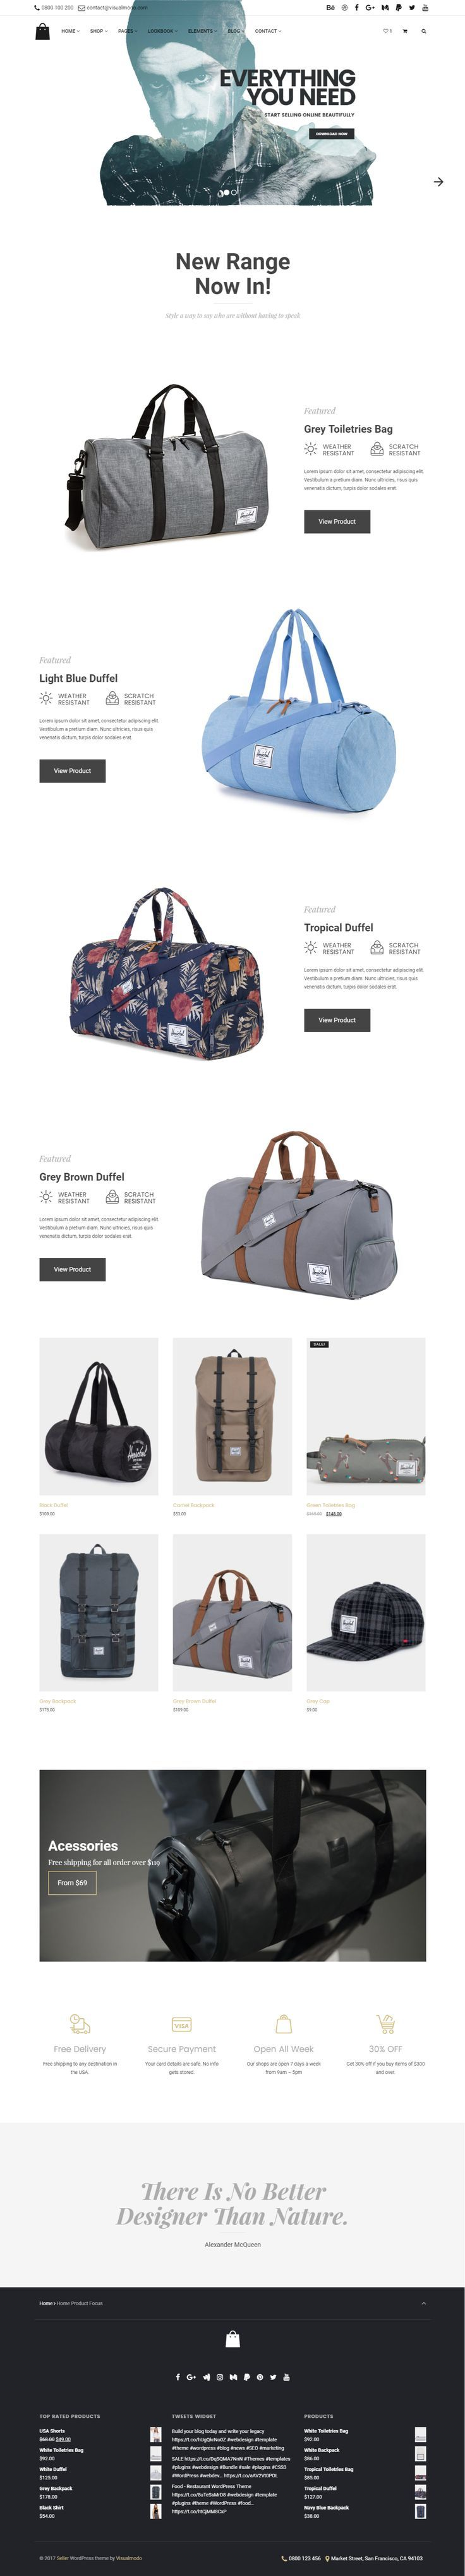 Seller - eCommerce WordPress Theme for creative and modern online stores - Responsive, clean, modern, Stylish, minimalist and multi-purpose shop template  https://visualmodo.com/theme/seller-ecommerce-wordpress-theme/  #webdesign #HTML5 #CSS3 #template #plugins #themes #WordPress #onepage #ecommerce #responsive #retina #marketing #website #blog #bootstrap #magazine #slider #business #siteBuilder #creative #Menu #Store #Shop #WooCommerce